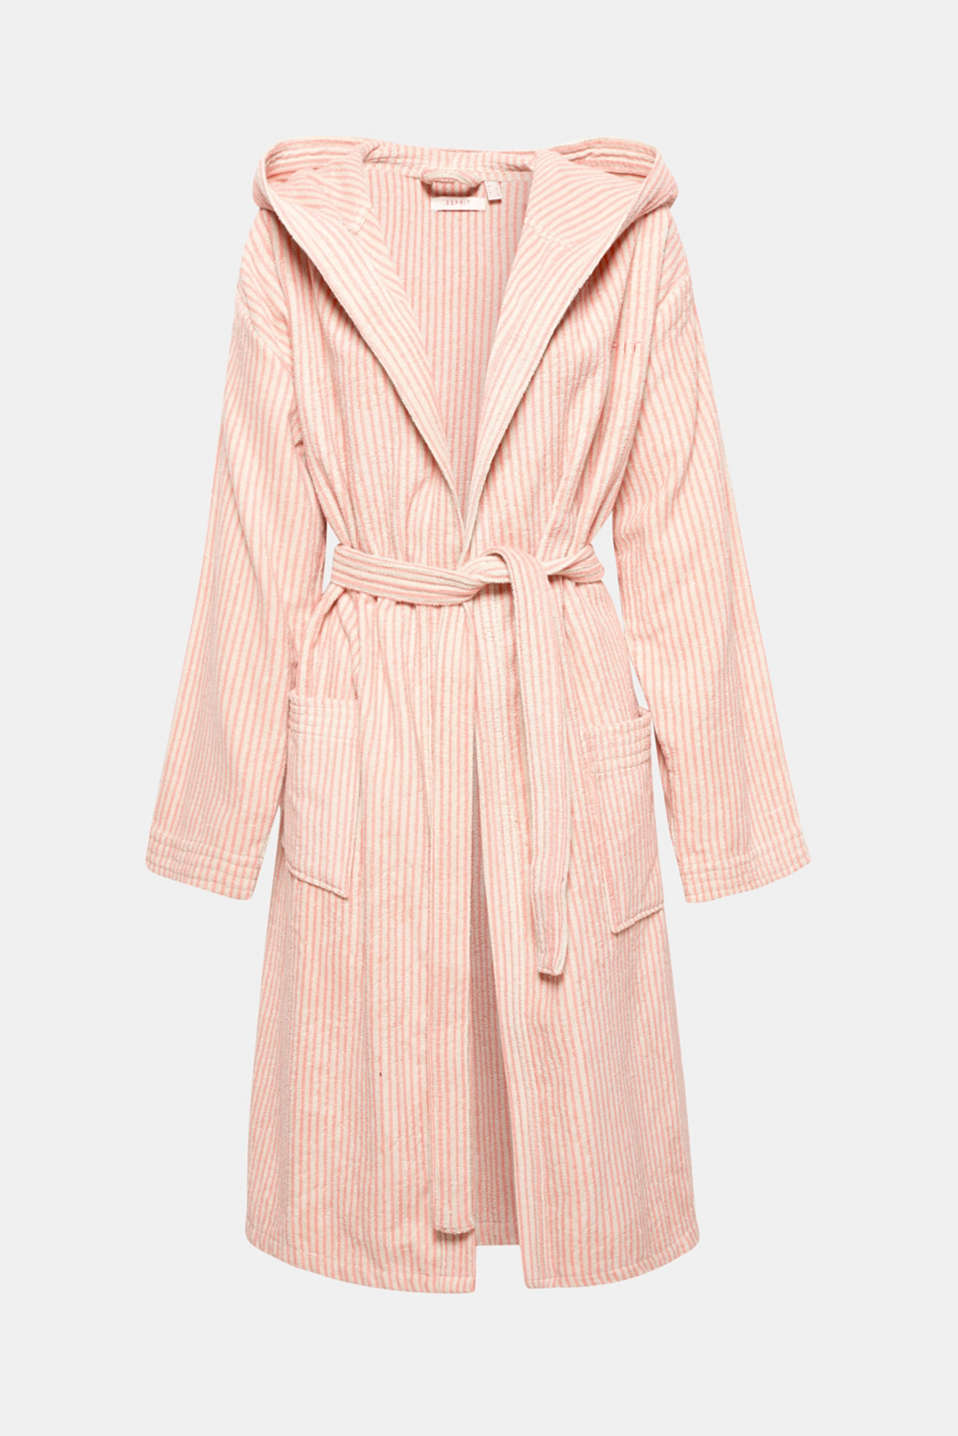 Terrycloth bathrobe in 100% cotton, OATMEAL/DUSTY, detail image number 2